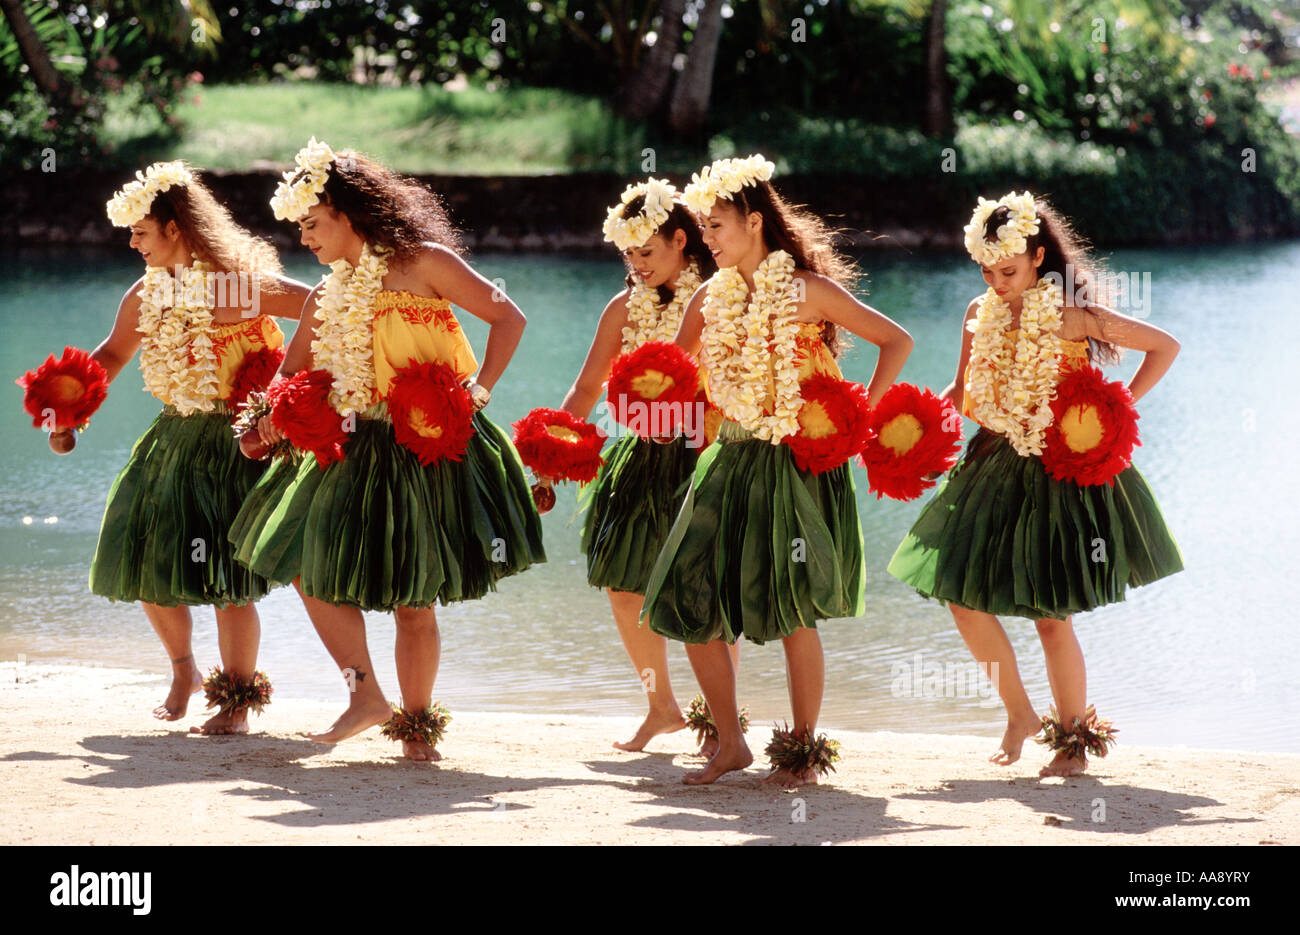 usa-hawaii-honolulu-waikiki-hula-AA8YRY.jpg